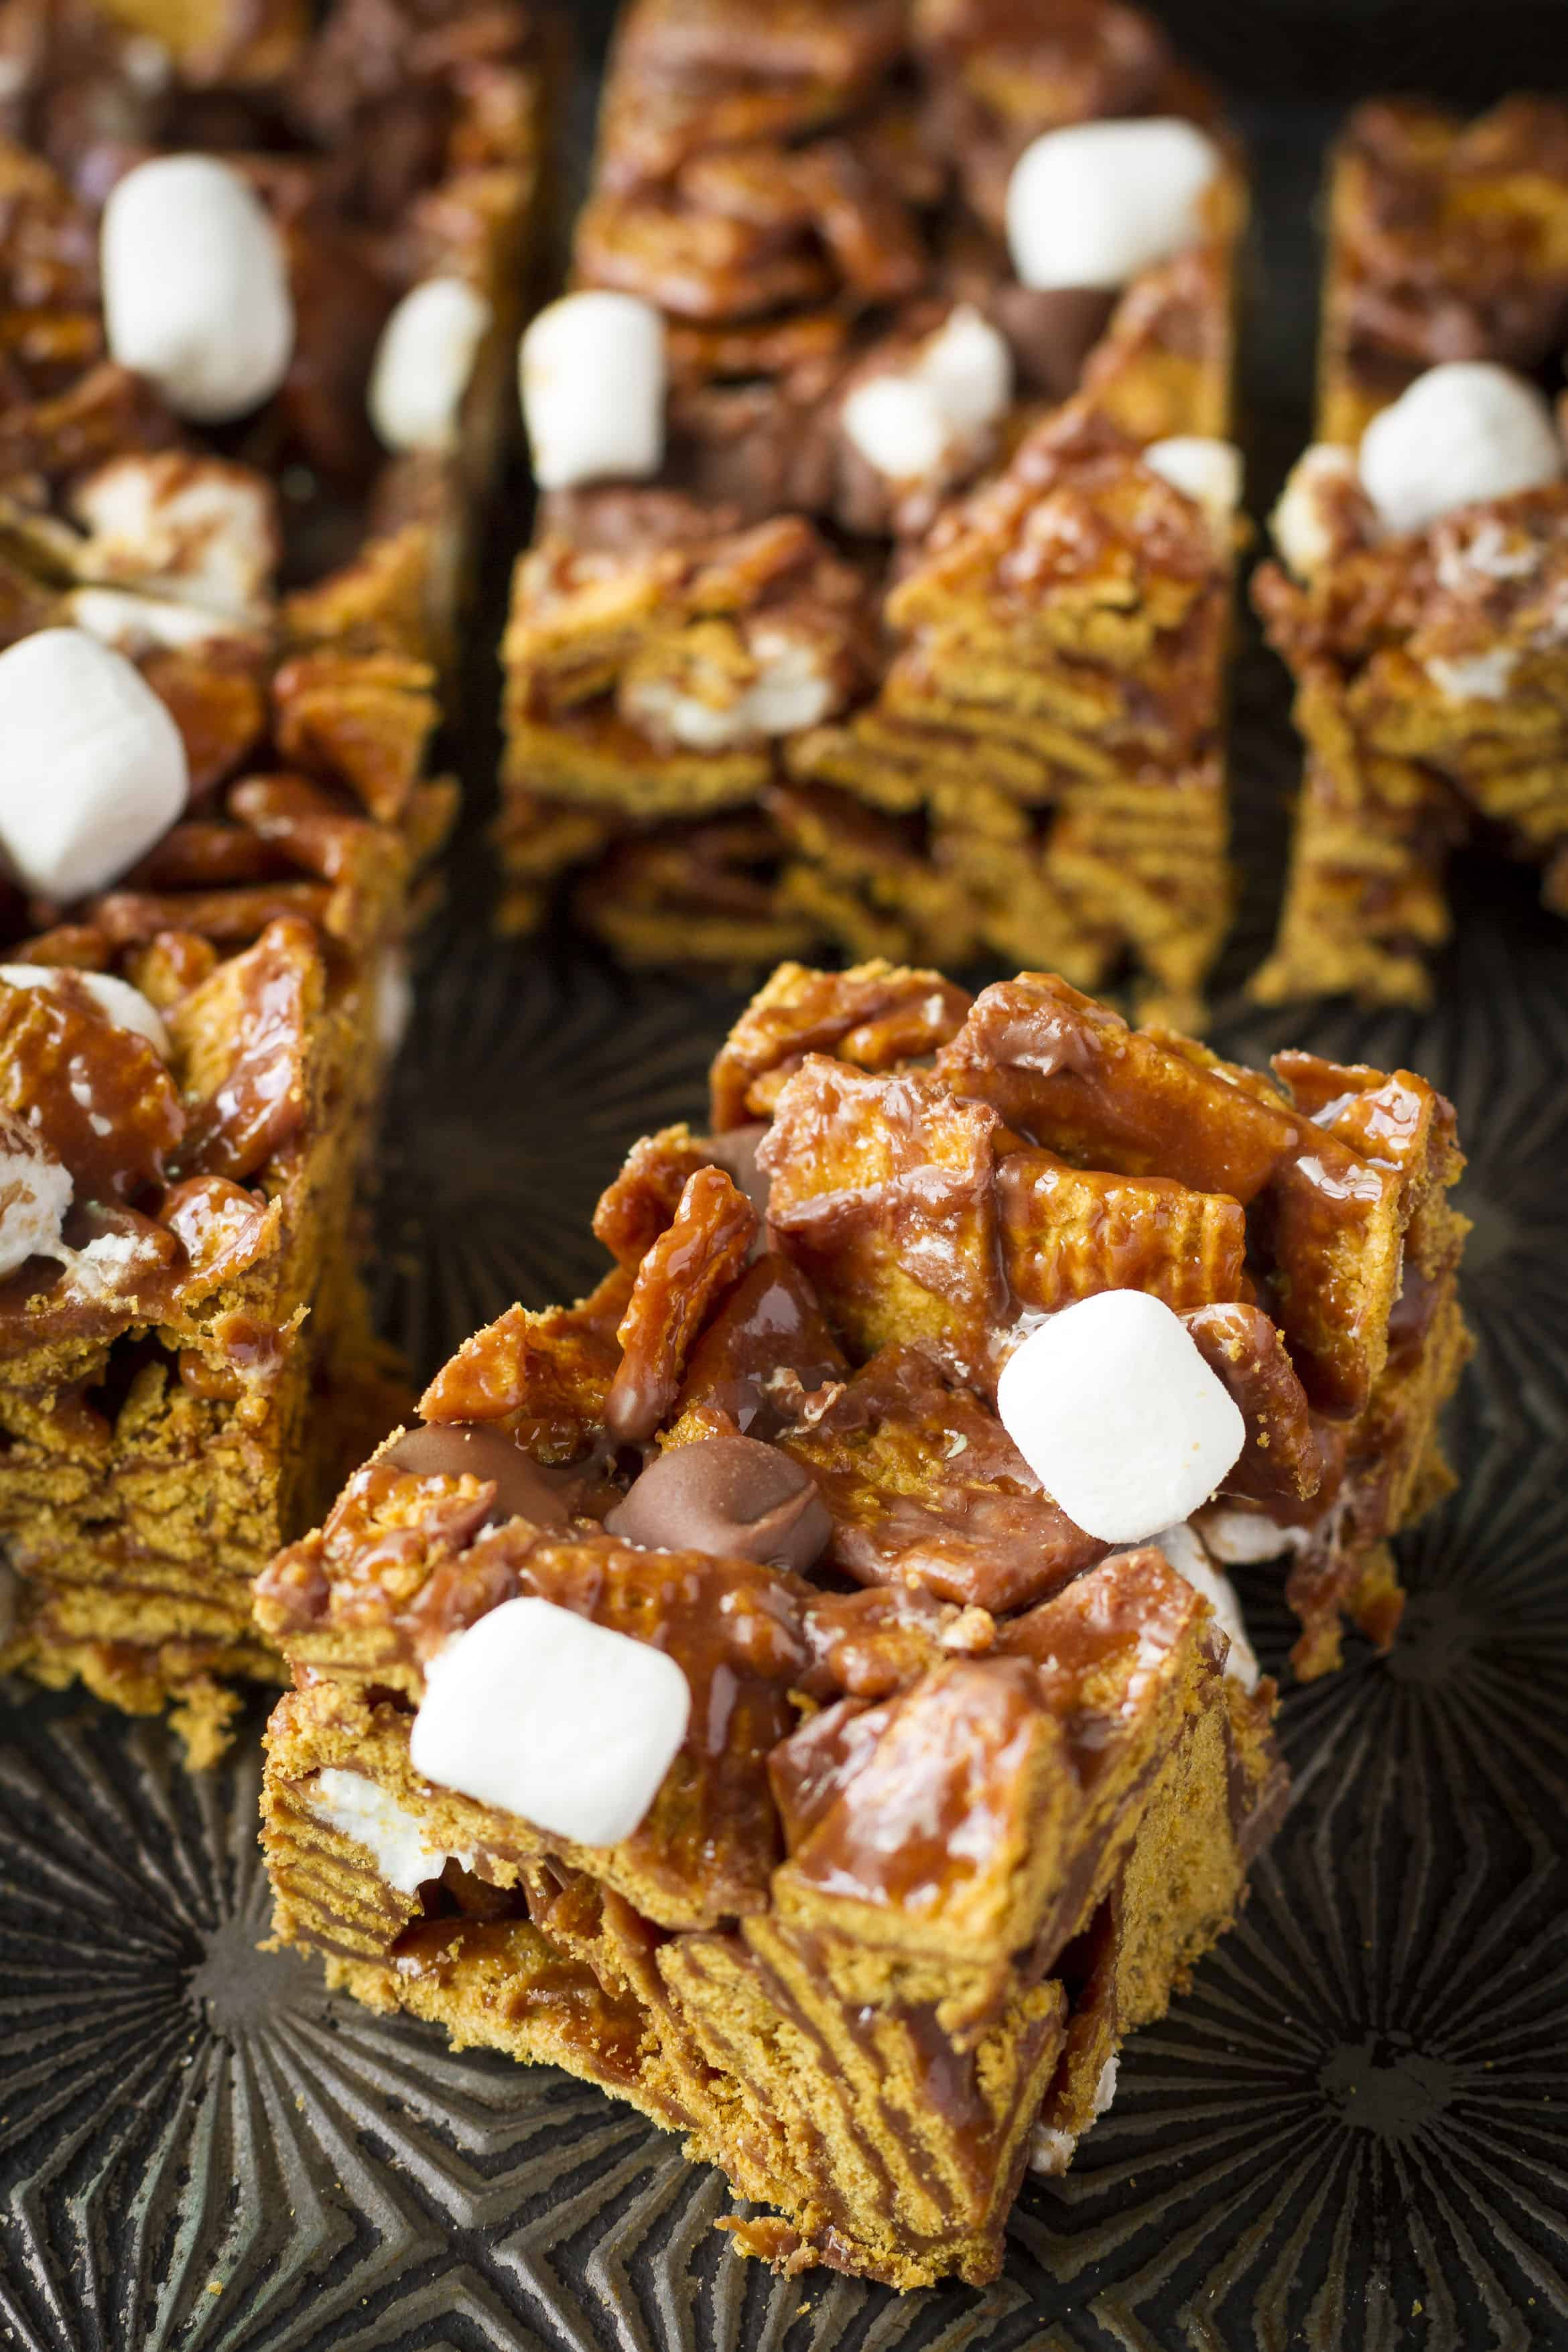 S'mores Bars -- these easy no bake s'mores cereal bars taste like a trip down memory lane... Crunchy graham cracker cereal, sweet and gooey mini marshmallows, and all that silky smooth milk chocolate, what's not to love?! | s'mores bars recipe | indoor s'mores bars | easy s'mores bars | s'mores bars desserts | find the recipe on unsophisticook.com